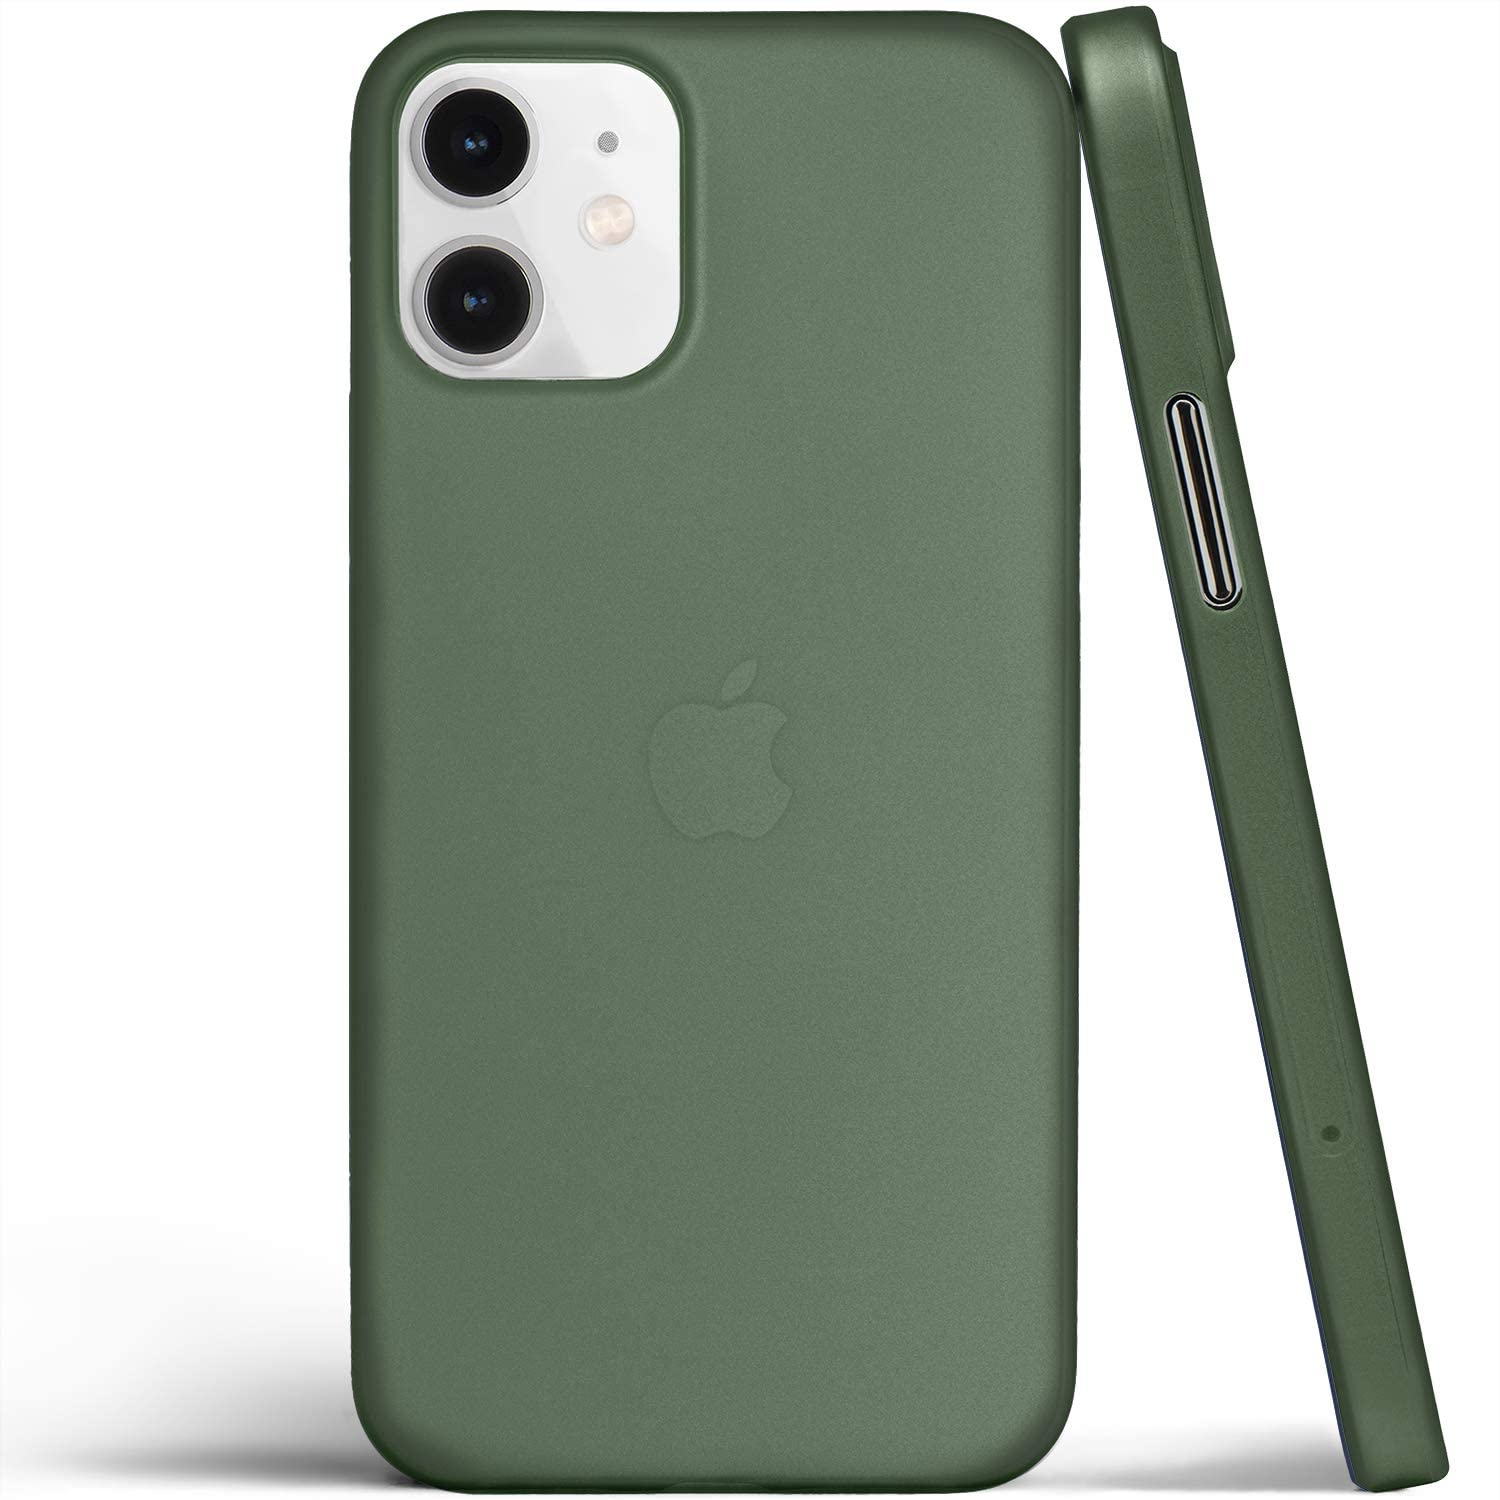 Totallee case